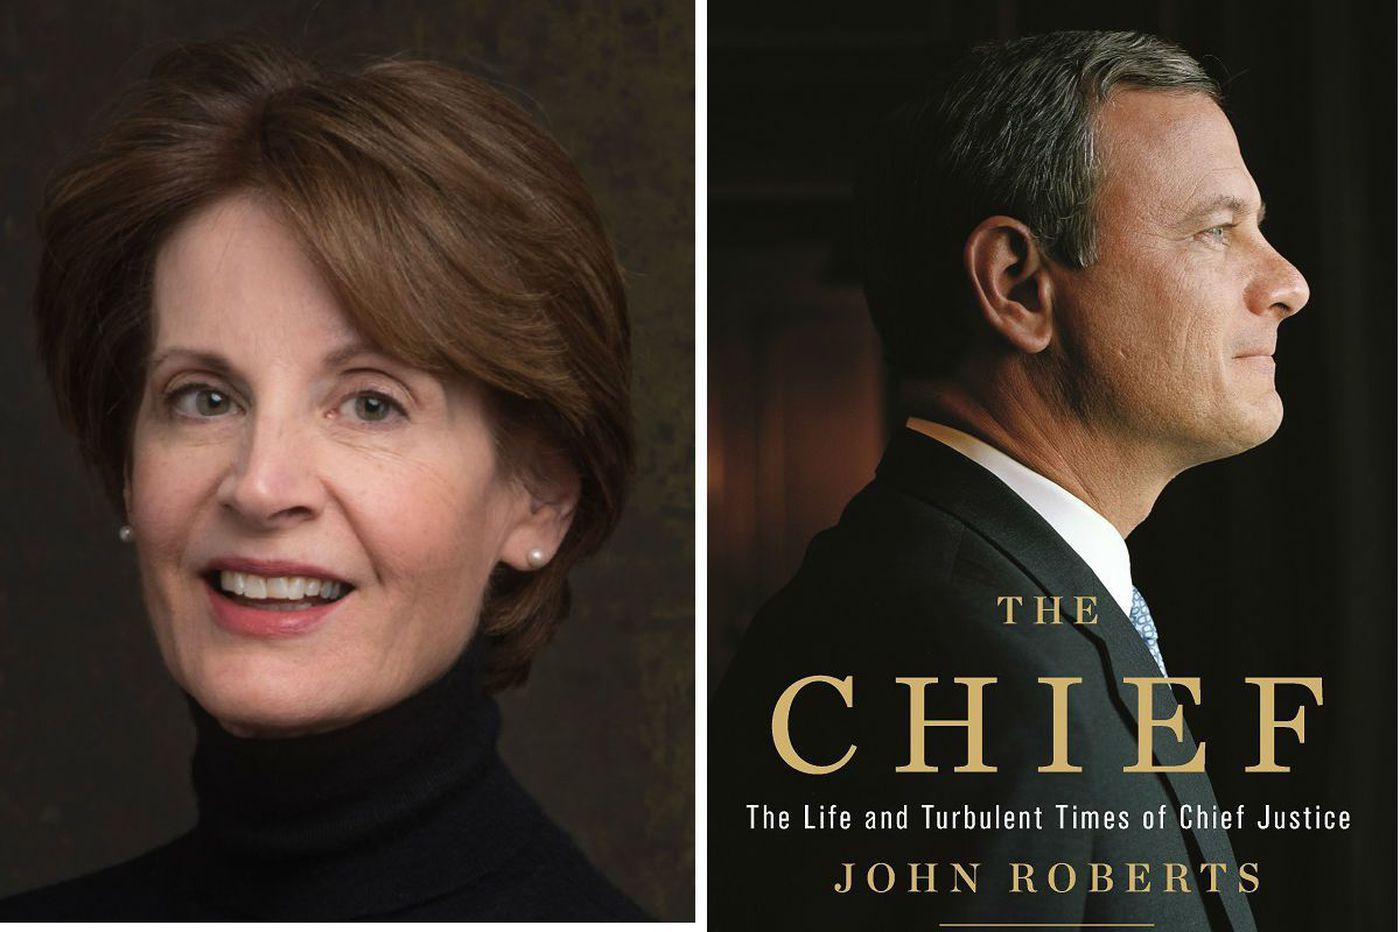 'The Chief' by Joan Biskupic: A man whose votes matter